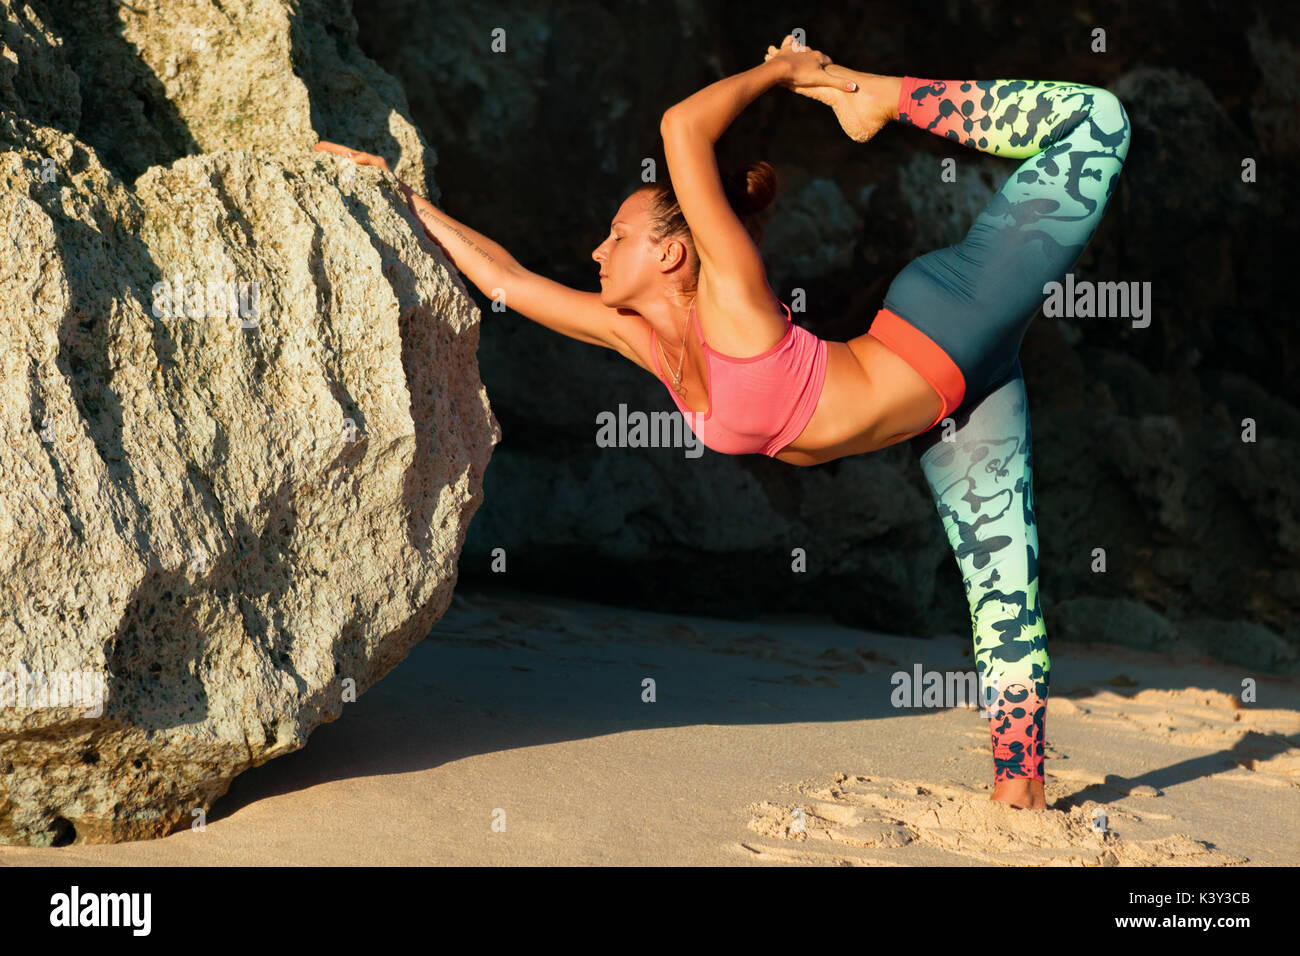 Meditation on rock background. Young active woman stand in yoga pose on beach rock, stretching to keep fit and health. Healthy lifestyle, fitness. - Stock Image